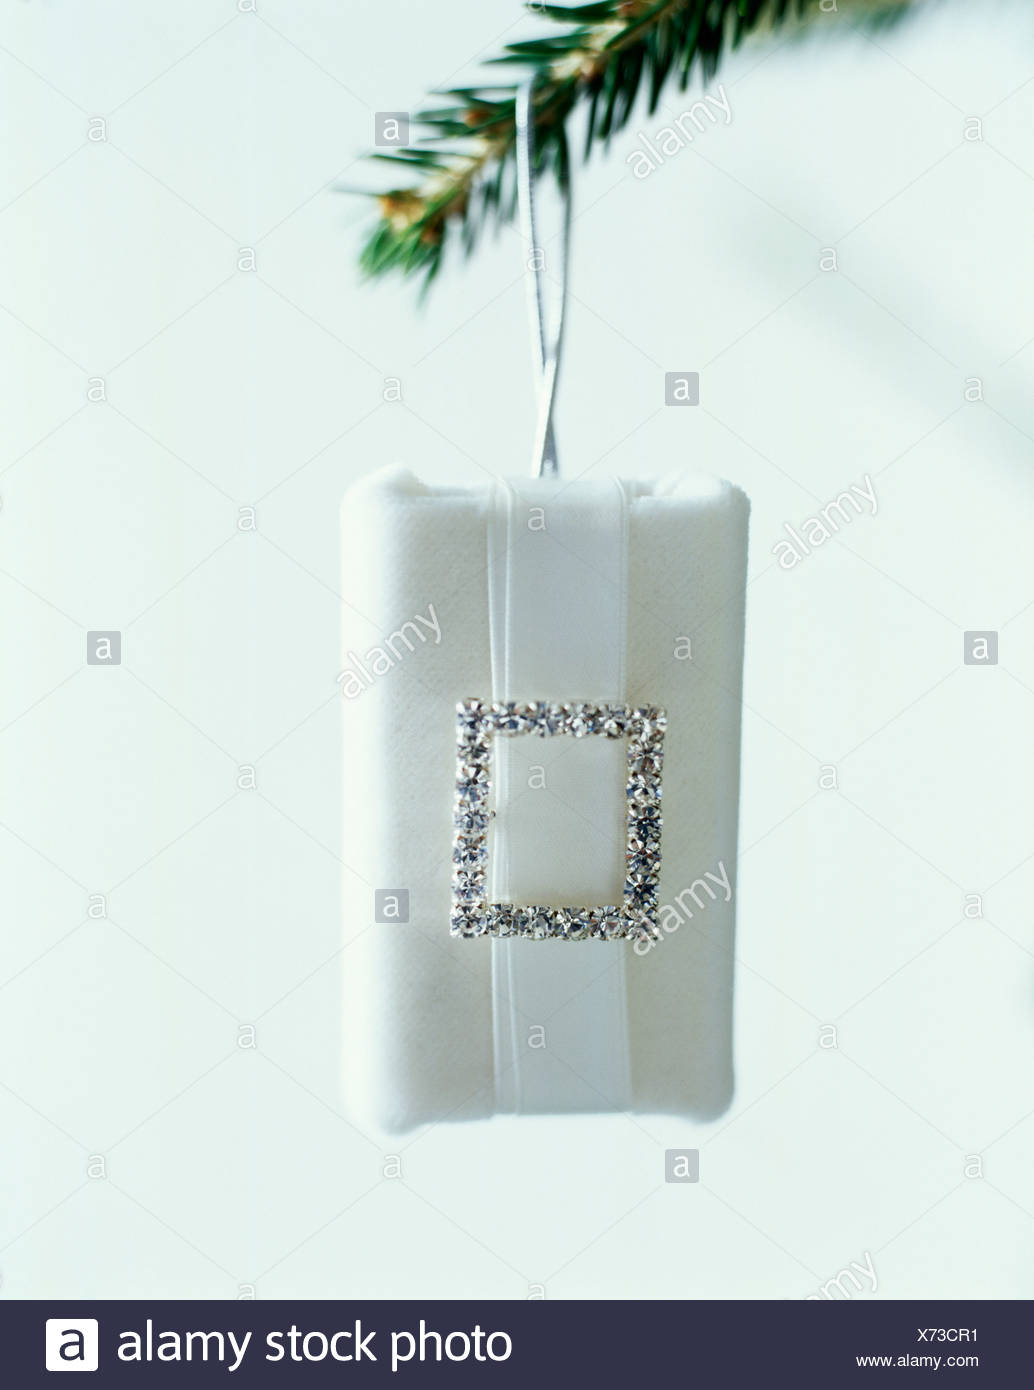 Close-up of Christmas present gift-wrapped in white paper decorated ...